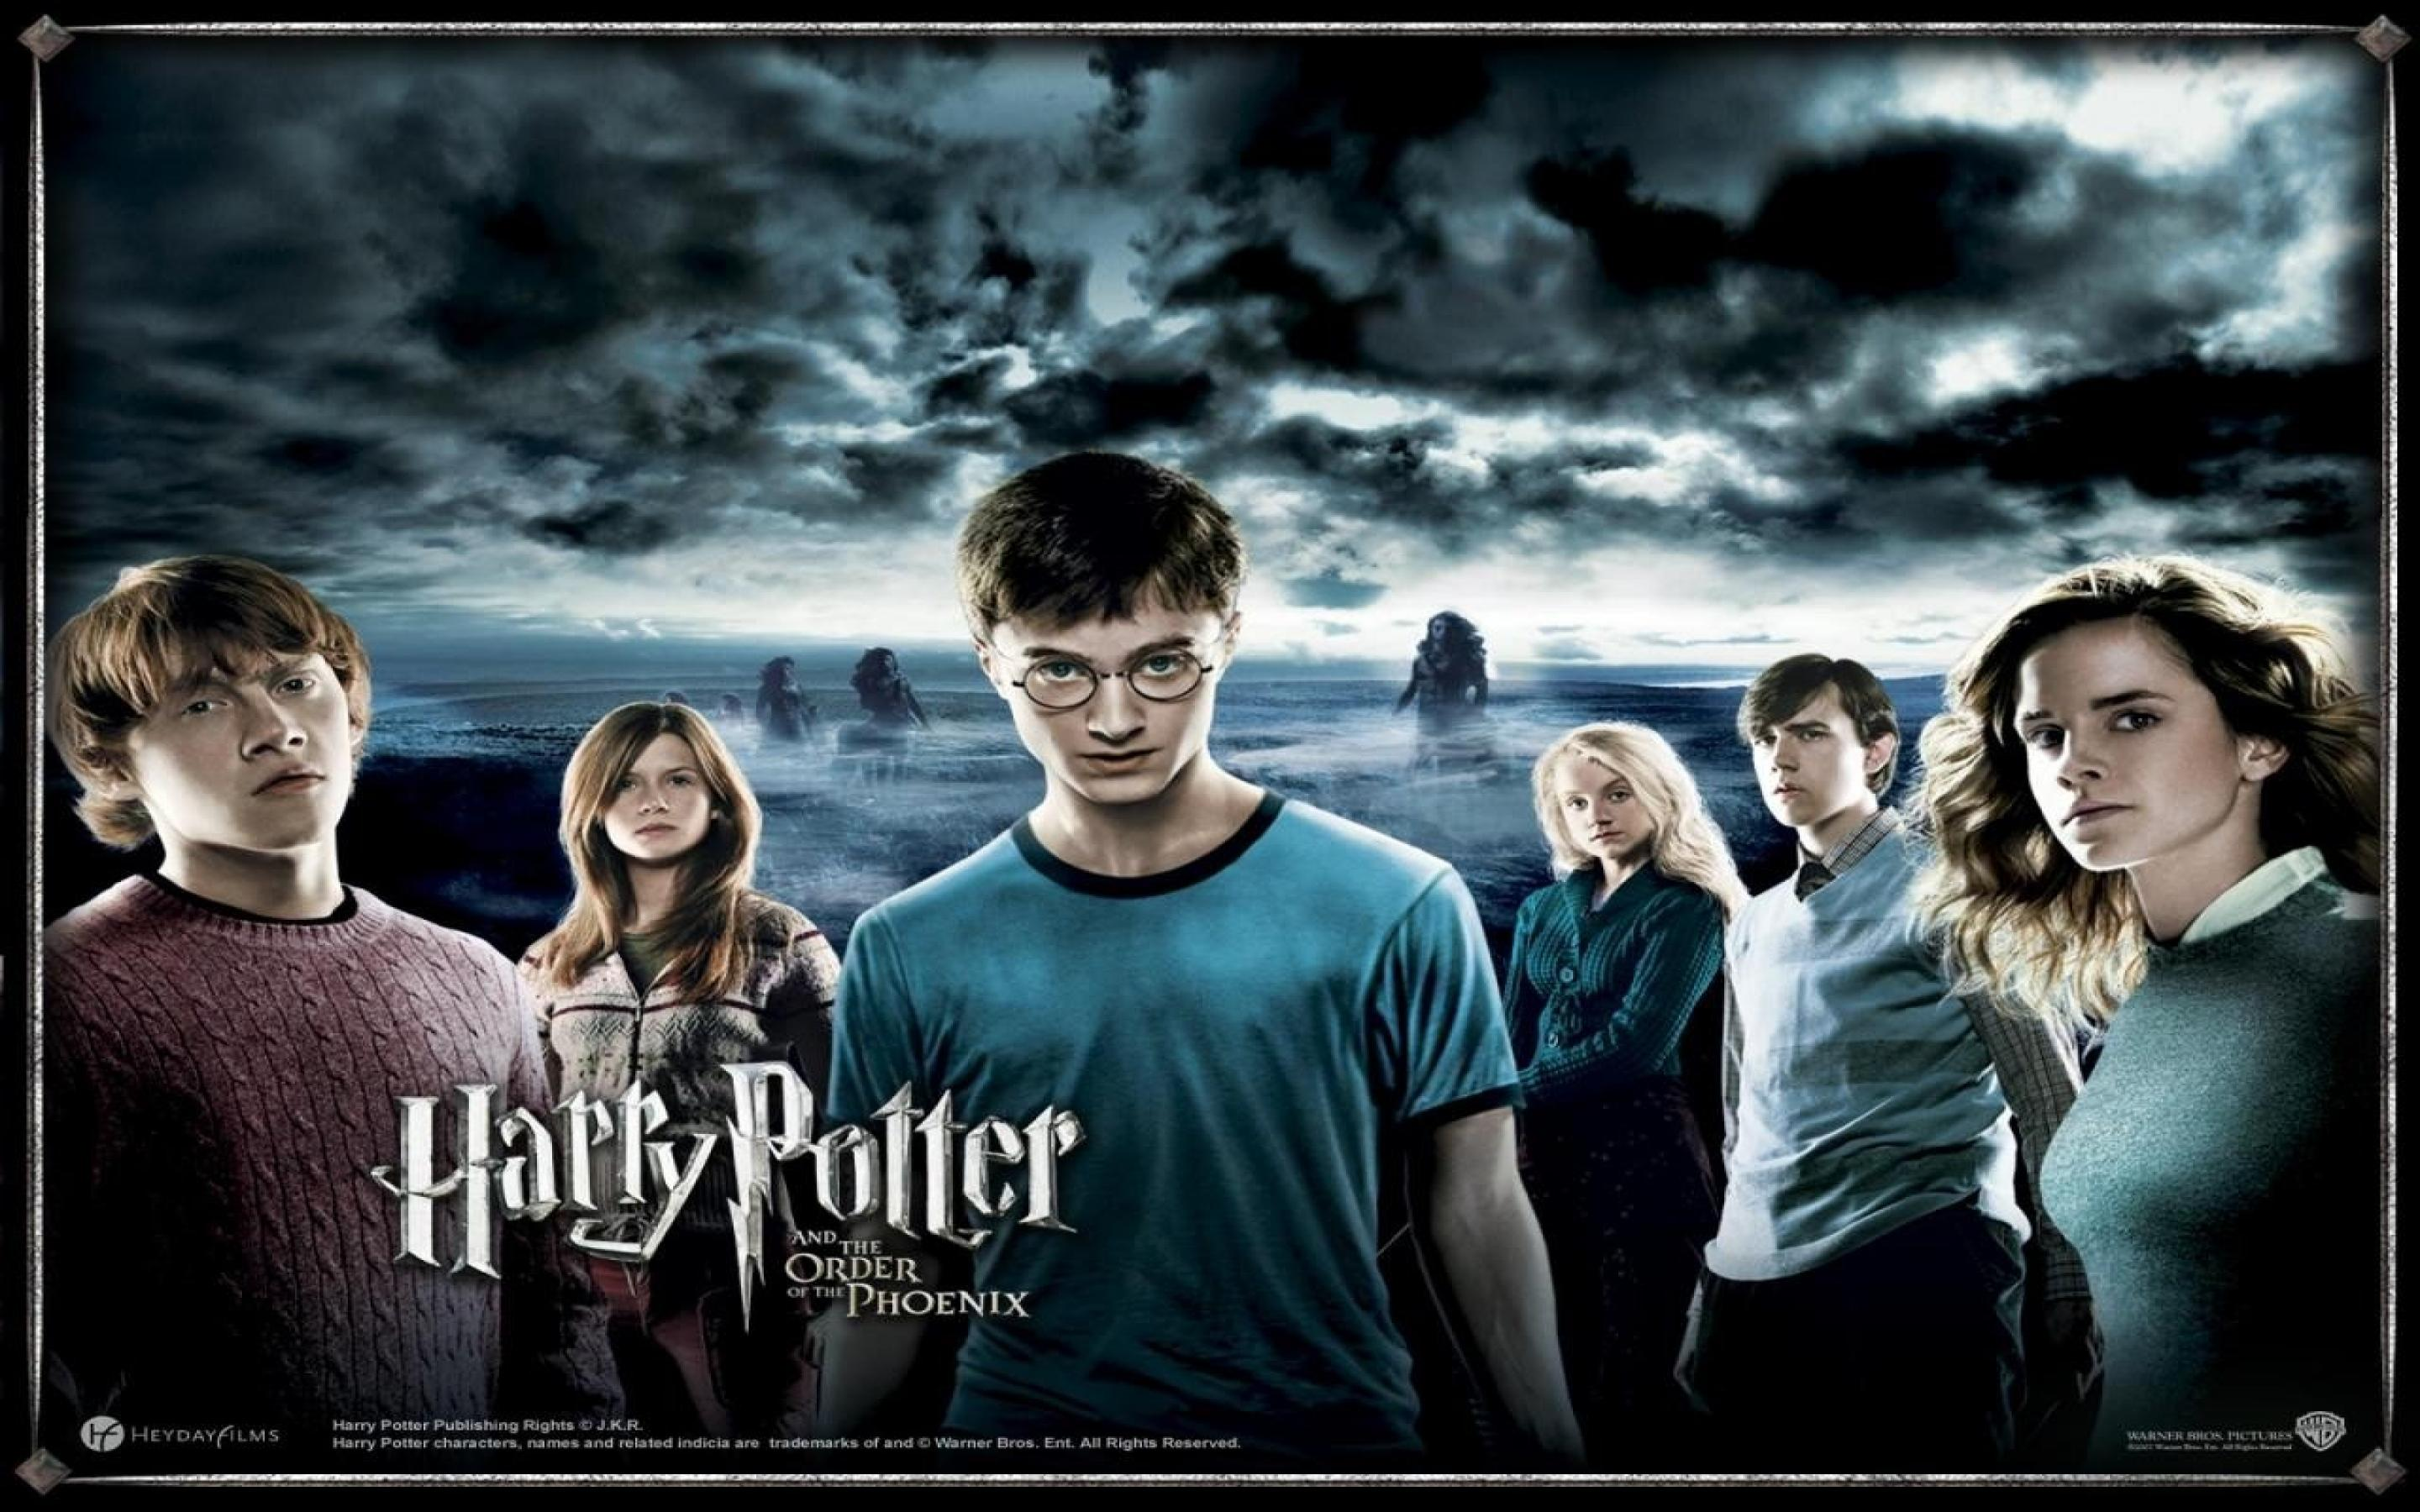 MoviesHarry Potter Hermione Harry Hp7 Part 2 17510download 1440x900 2880x1800